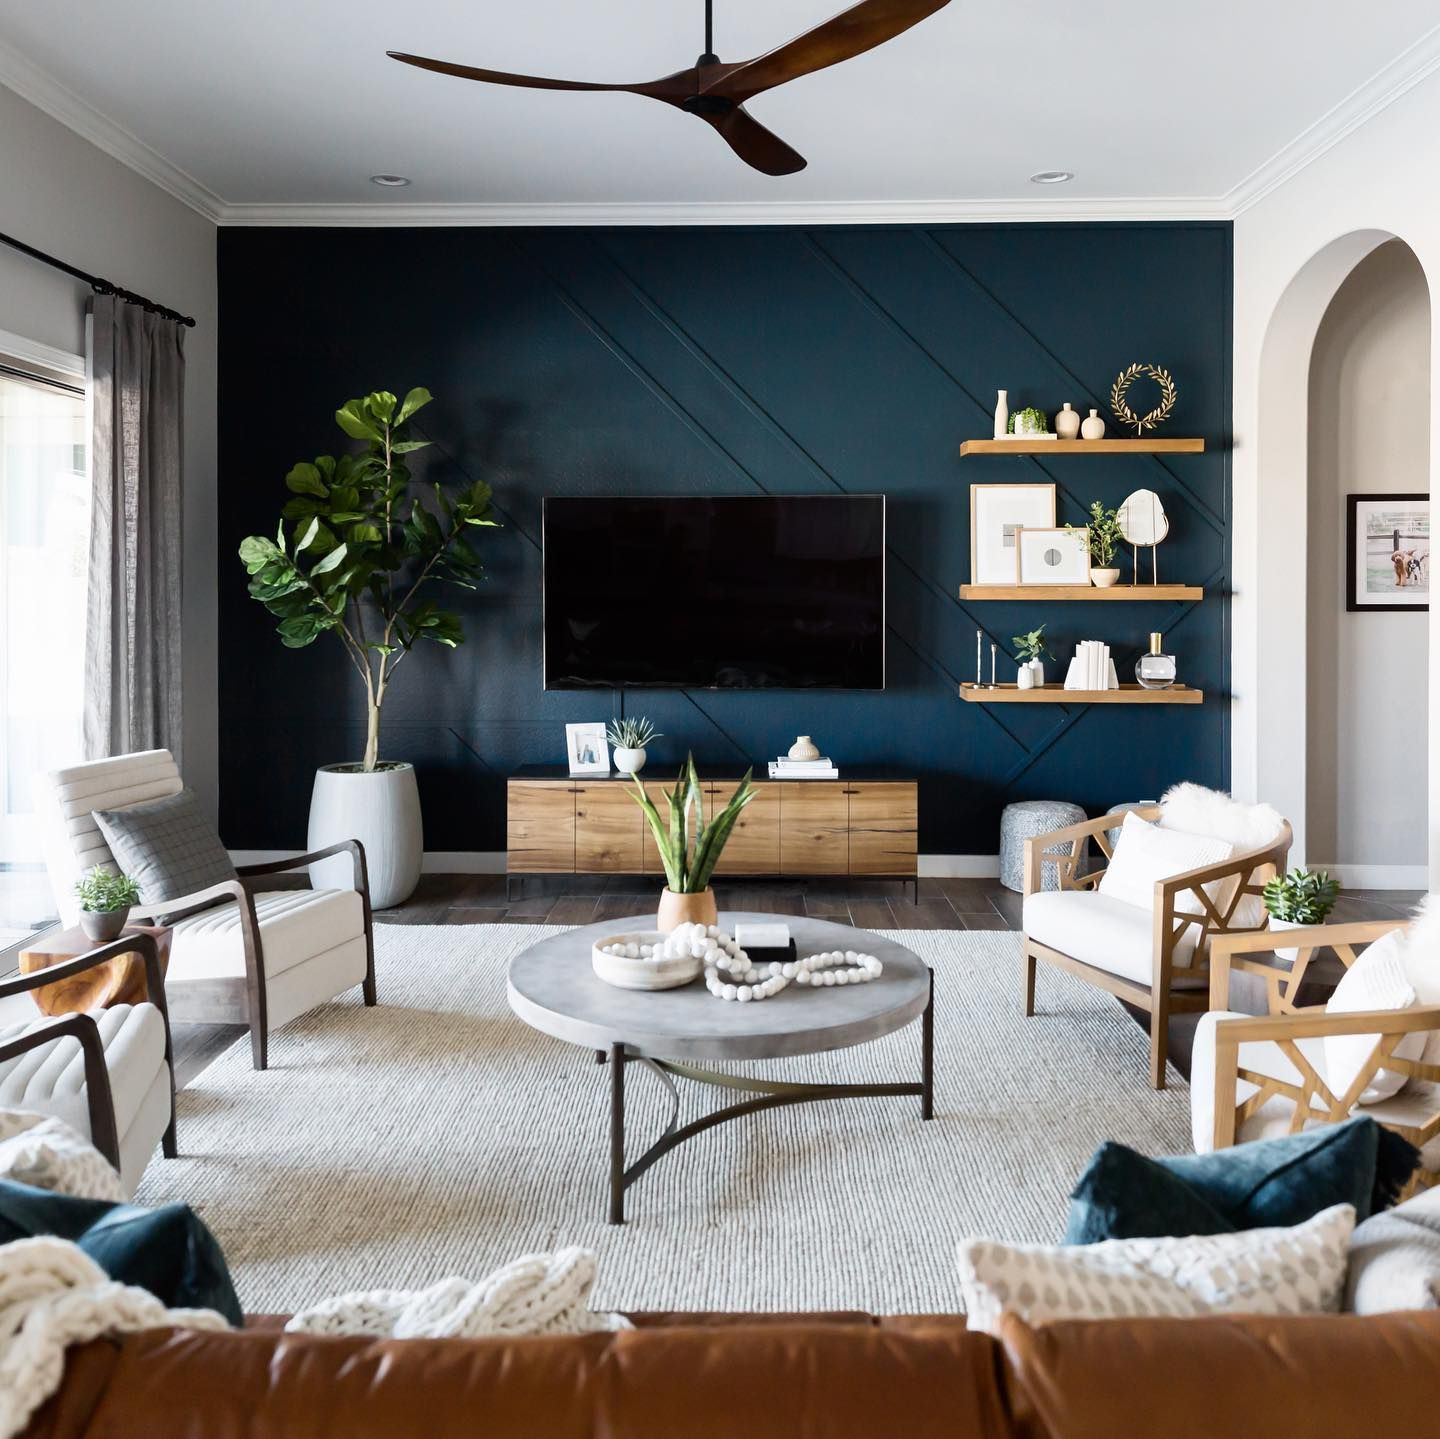 It S Times Like This Where We Understand The Real Value Of A Home Zillow That Simple Statement G In 2020 Living Room Designs Living Room Decor Living Room Color